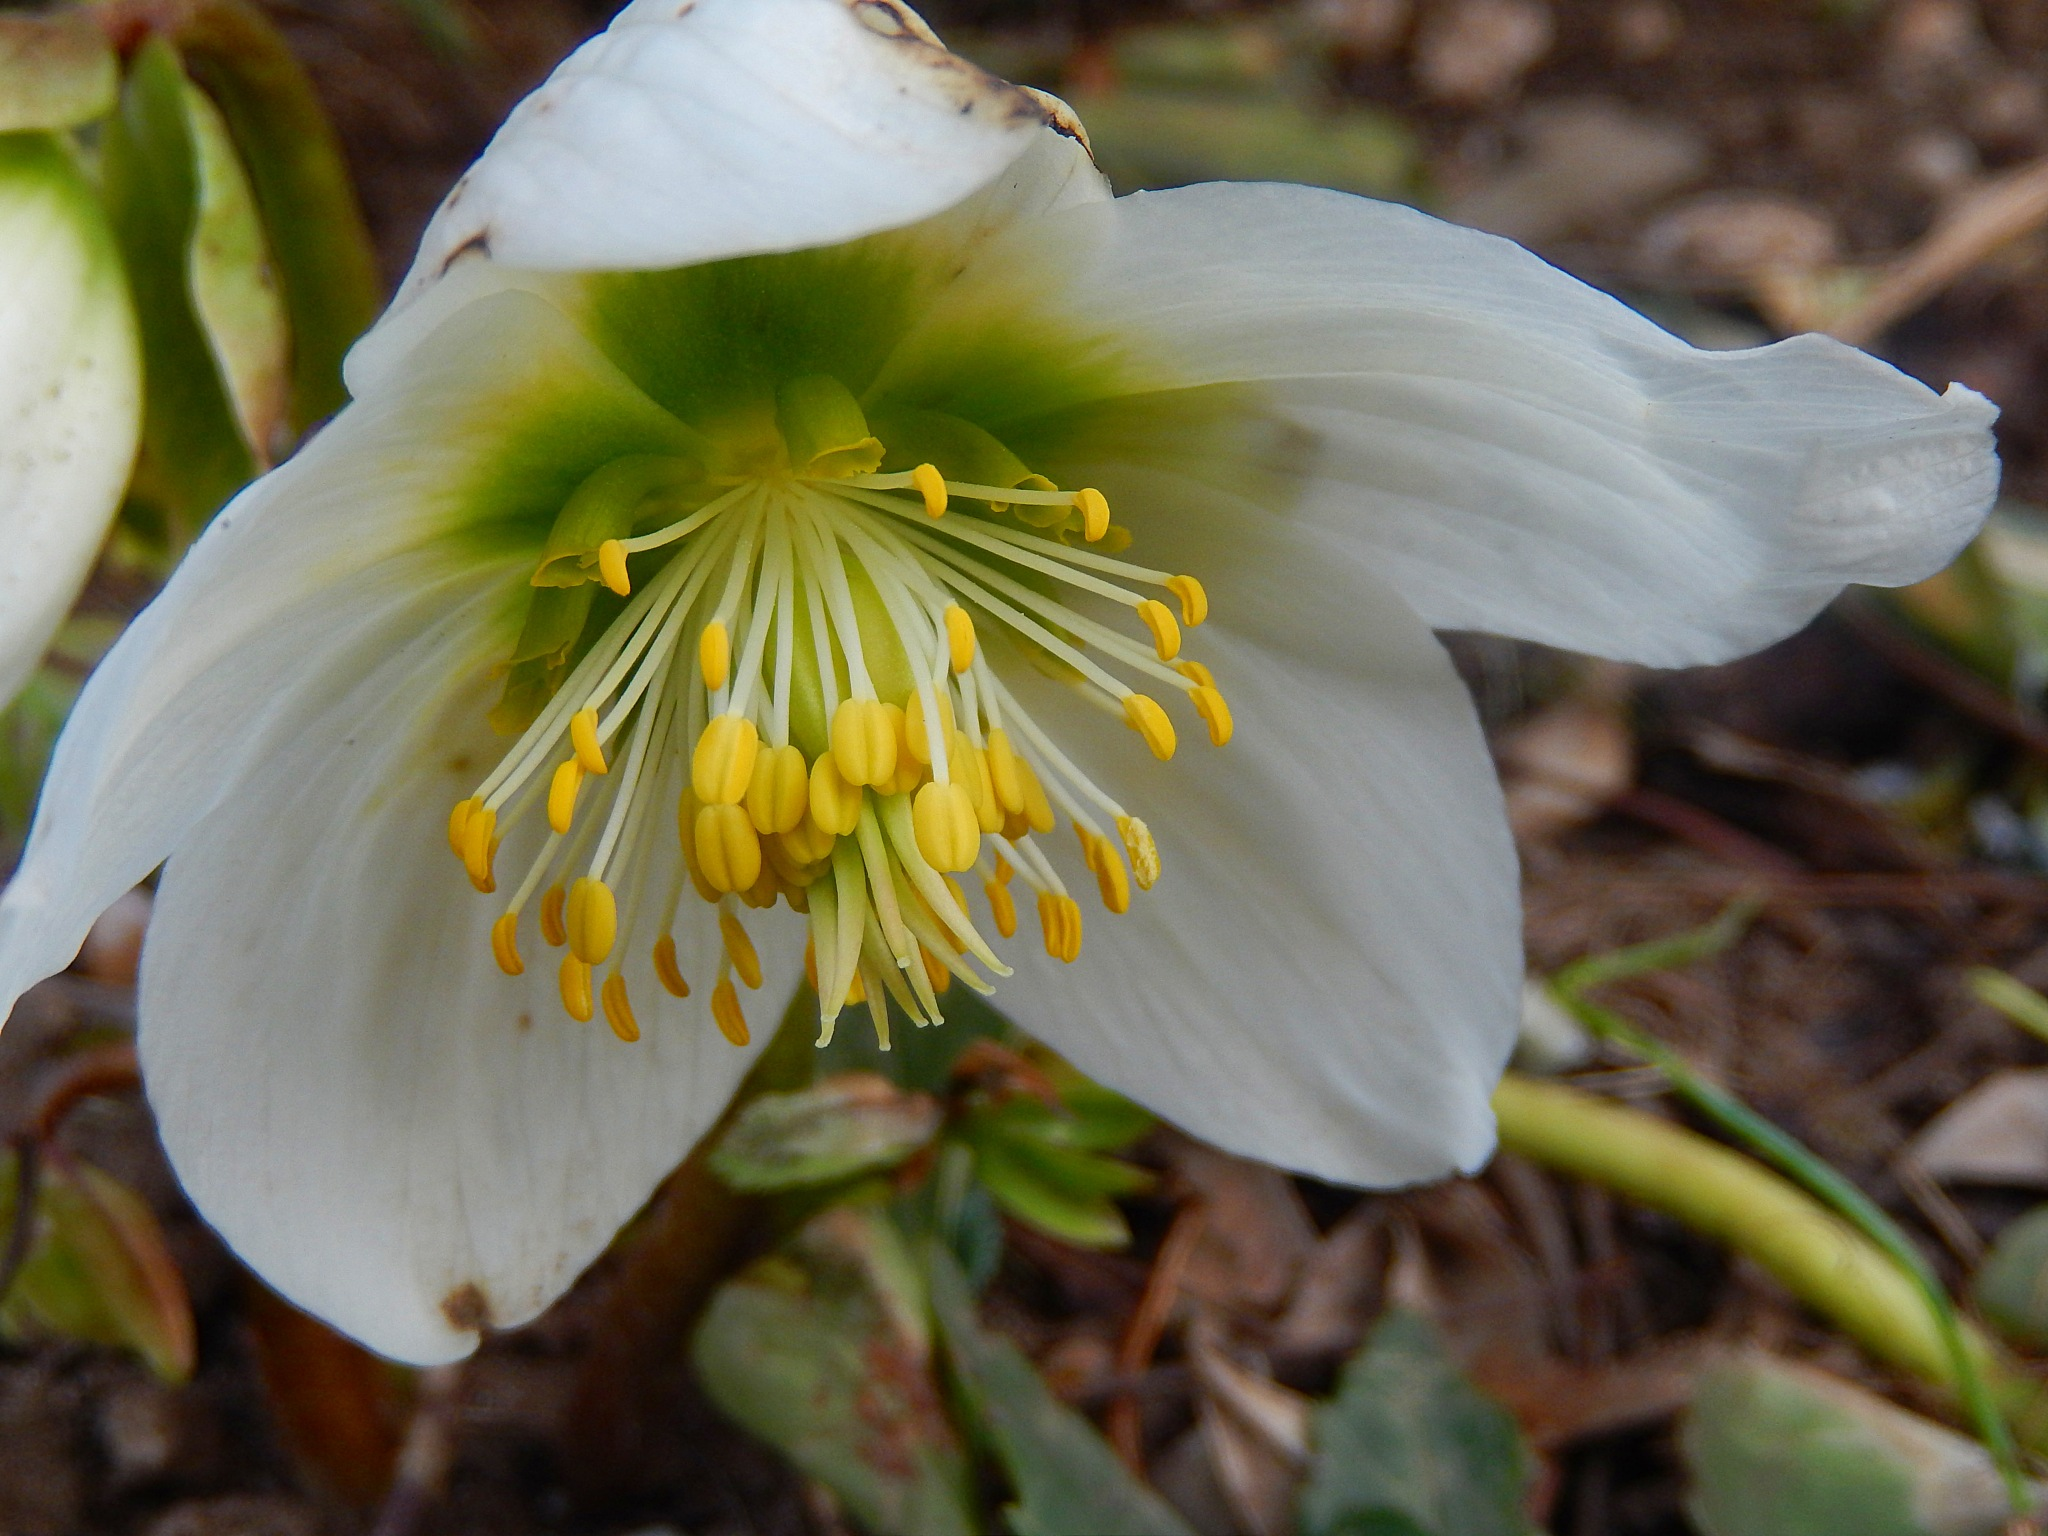 Helleborus by zvnktomasevic